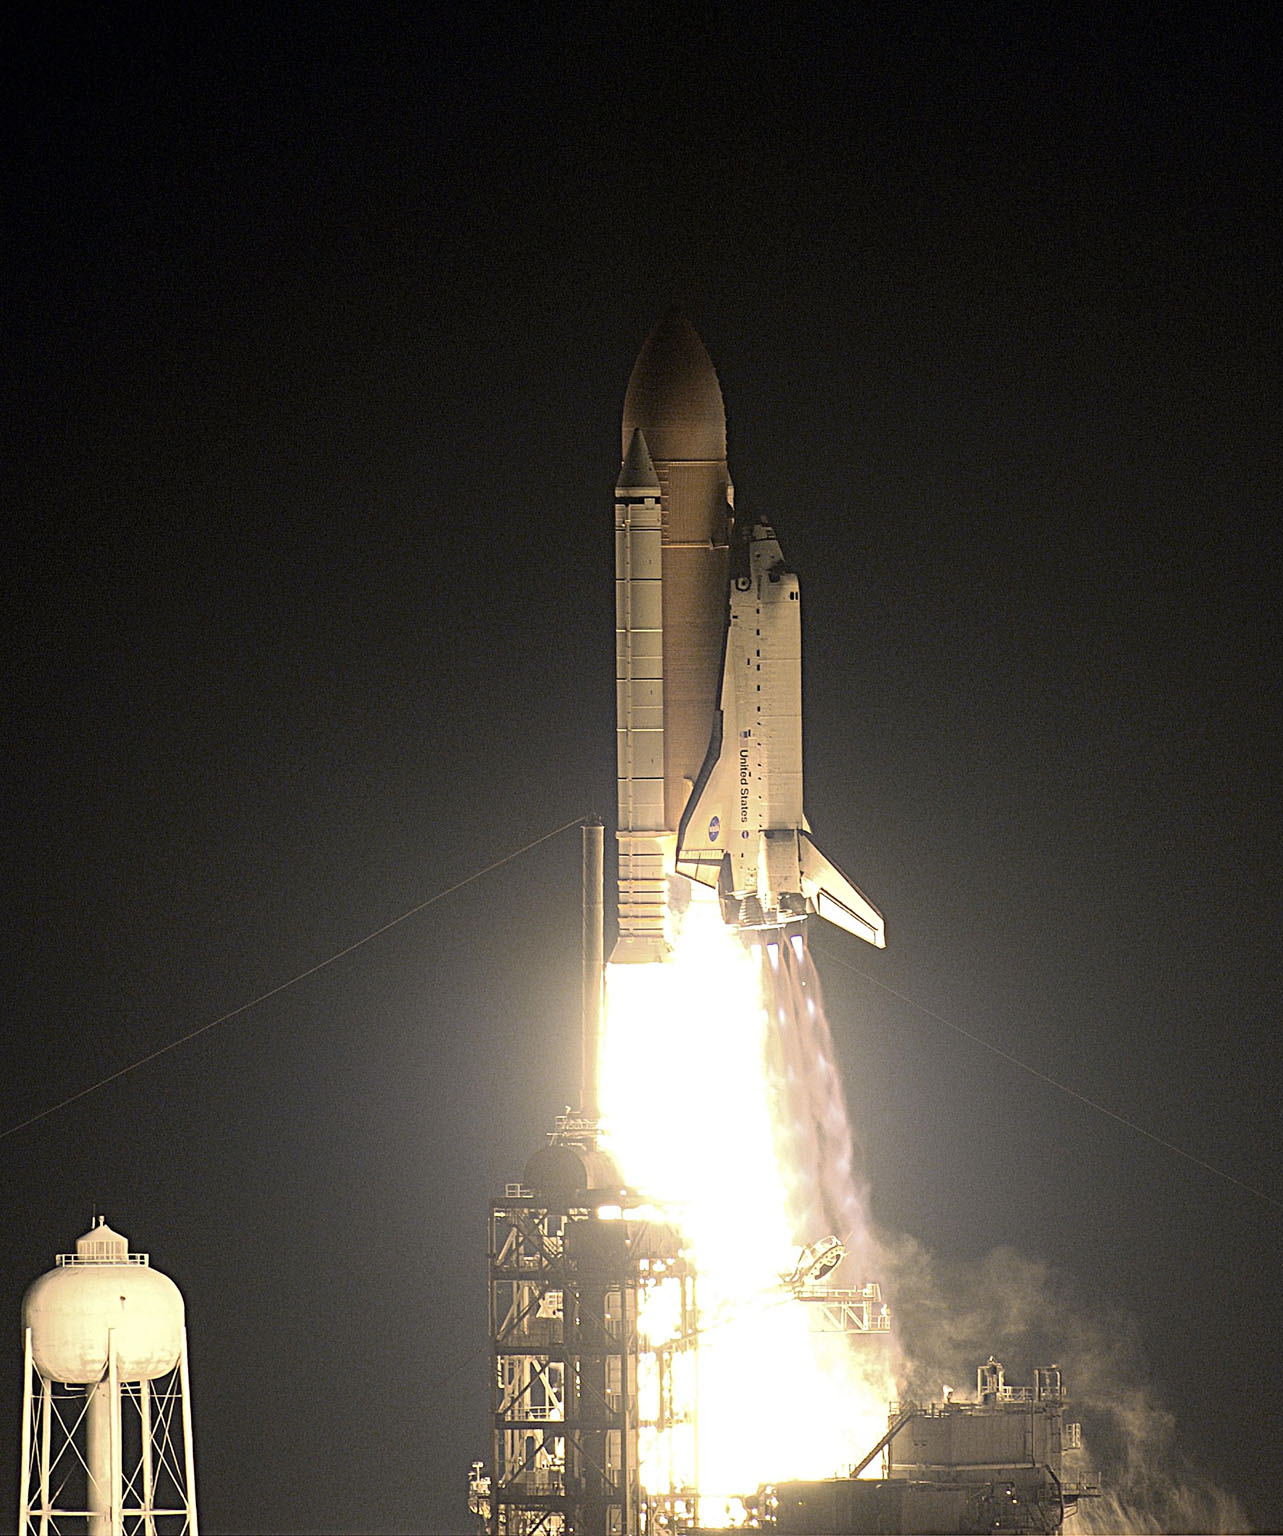 KENNEDY SPACE CENTER, FLA. - Against a black moonless sky, Space Shuttle Endeavour lights up the night as it blazes into space after an ontime liftoff at 7:49:47 p.m. EST. The launch is the 19th for Endeavour, and the 112th flight in the Shuttle program. Mission STS-113 is the 16th assembly flight to the International Space Station, carrying another structure for the Station, the P1 integrated truss. Also onboard are the Expedition 6 crew, who will replace Expedition 5. Endeavour is scheduled to land at KSC after an 11-day journey. [Photo by Scott Andrews]